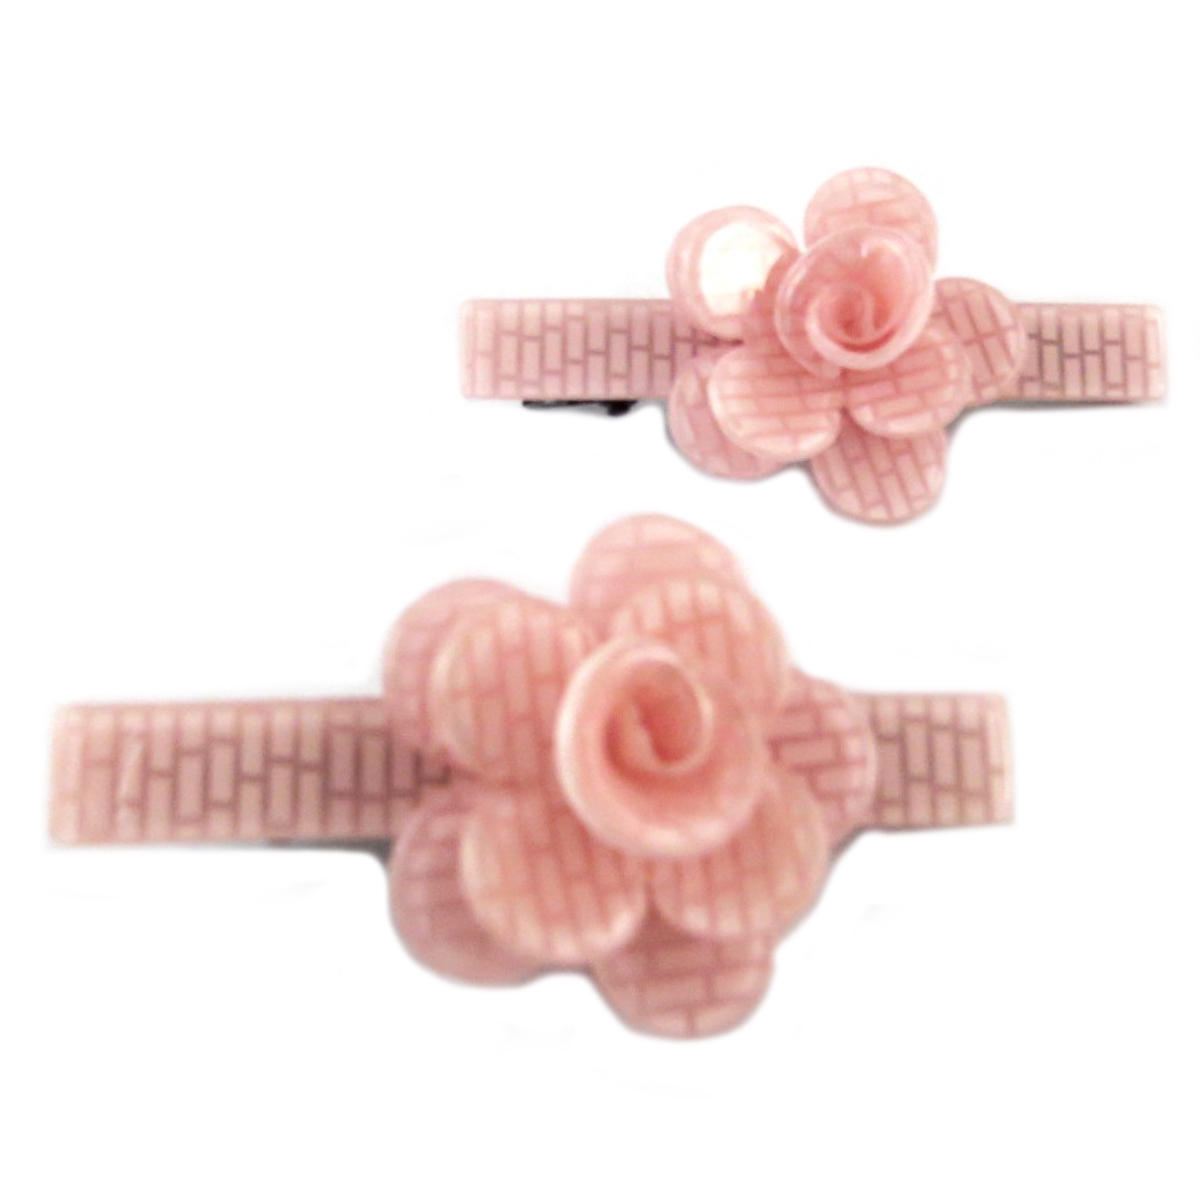 2 barrettes / pinces pélican \'Sissi\' rose (rosa romantica) - 60x25 mm - [Q0073]